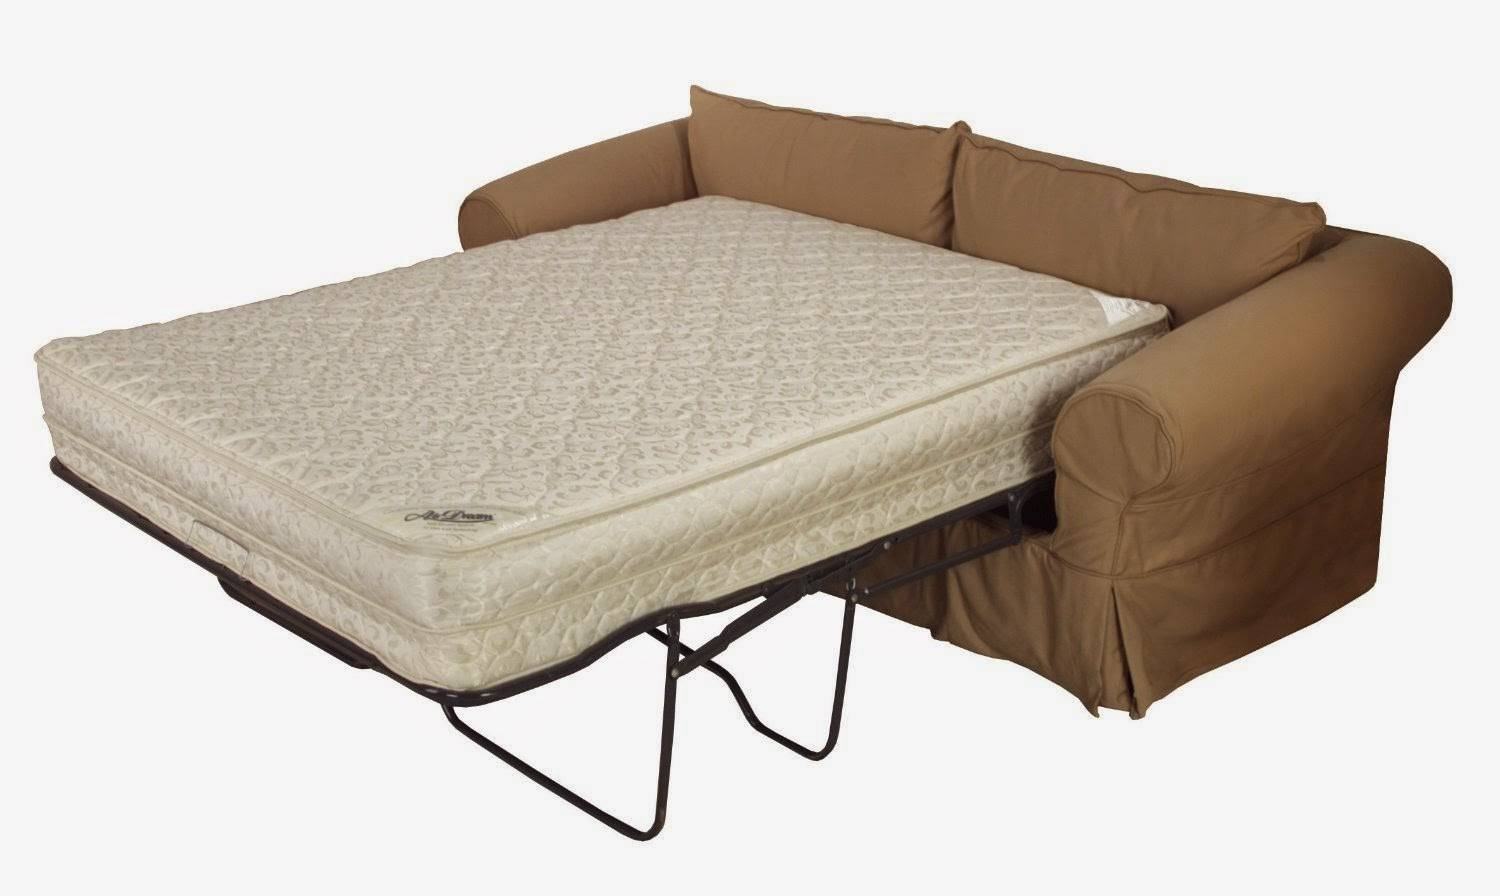 Fold Out Sleeper Chair Fold Out Chair Bed Fold Out Guest Beds. Jay inside Footstool Pouffe Sofa Folding Bed (Image 5 of 25)